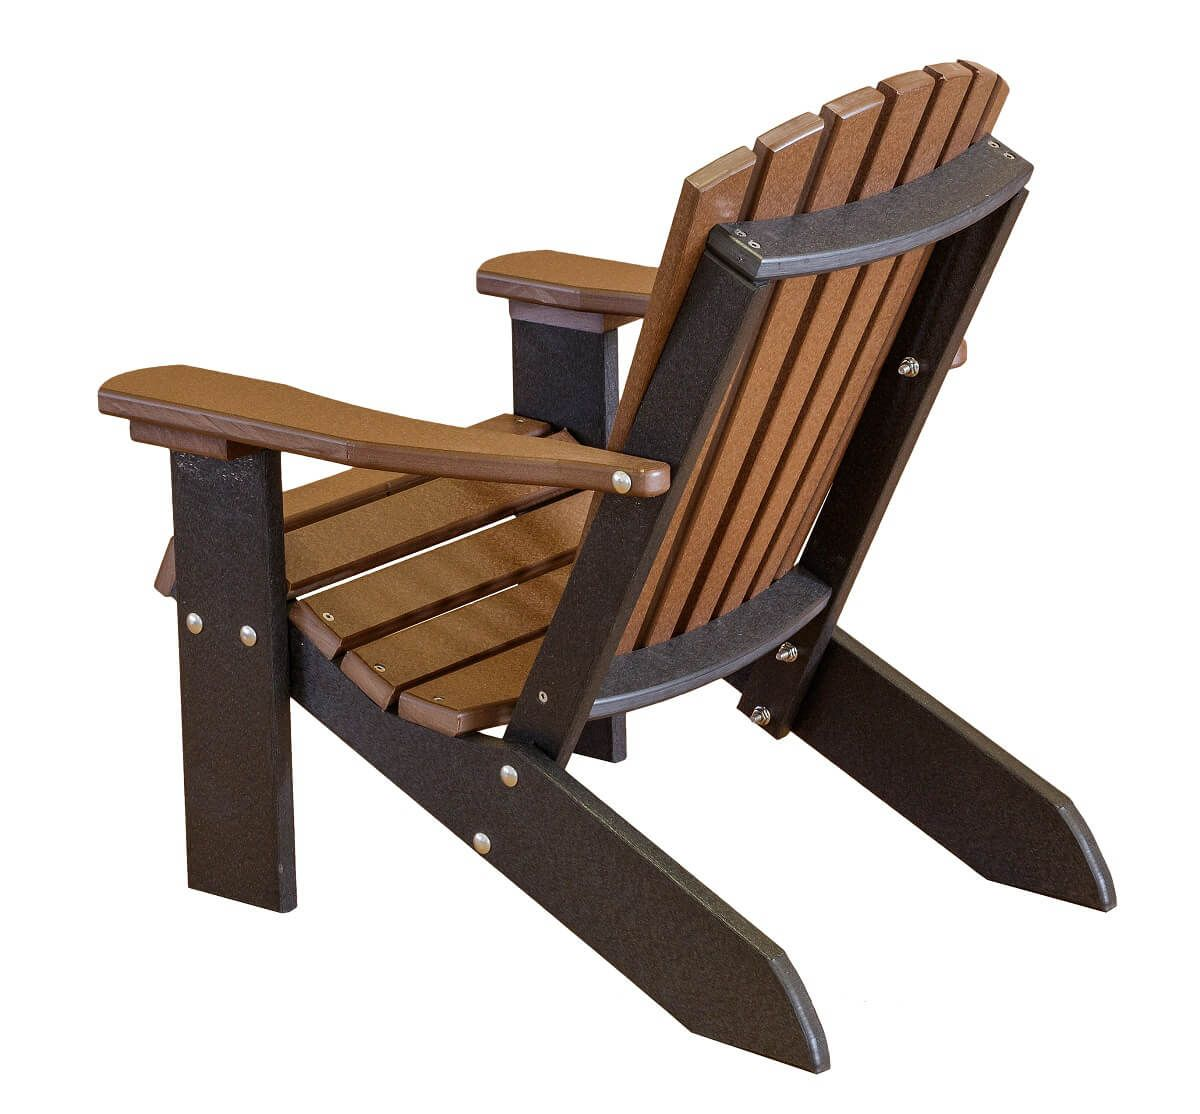 Sidra Child's Adirondack Chair - Back